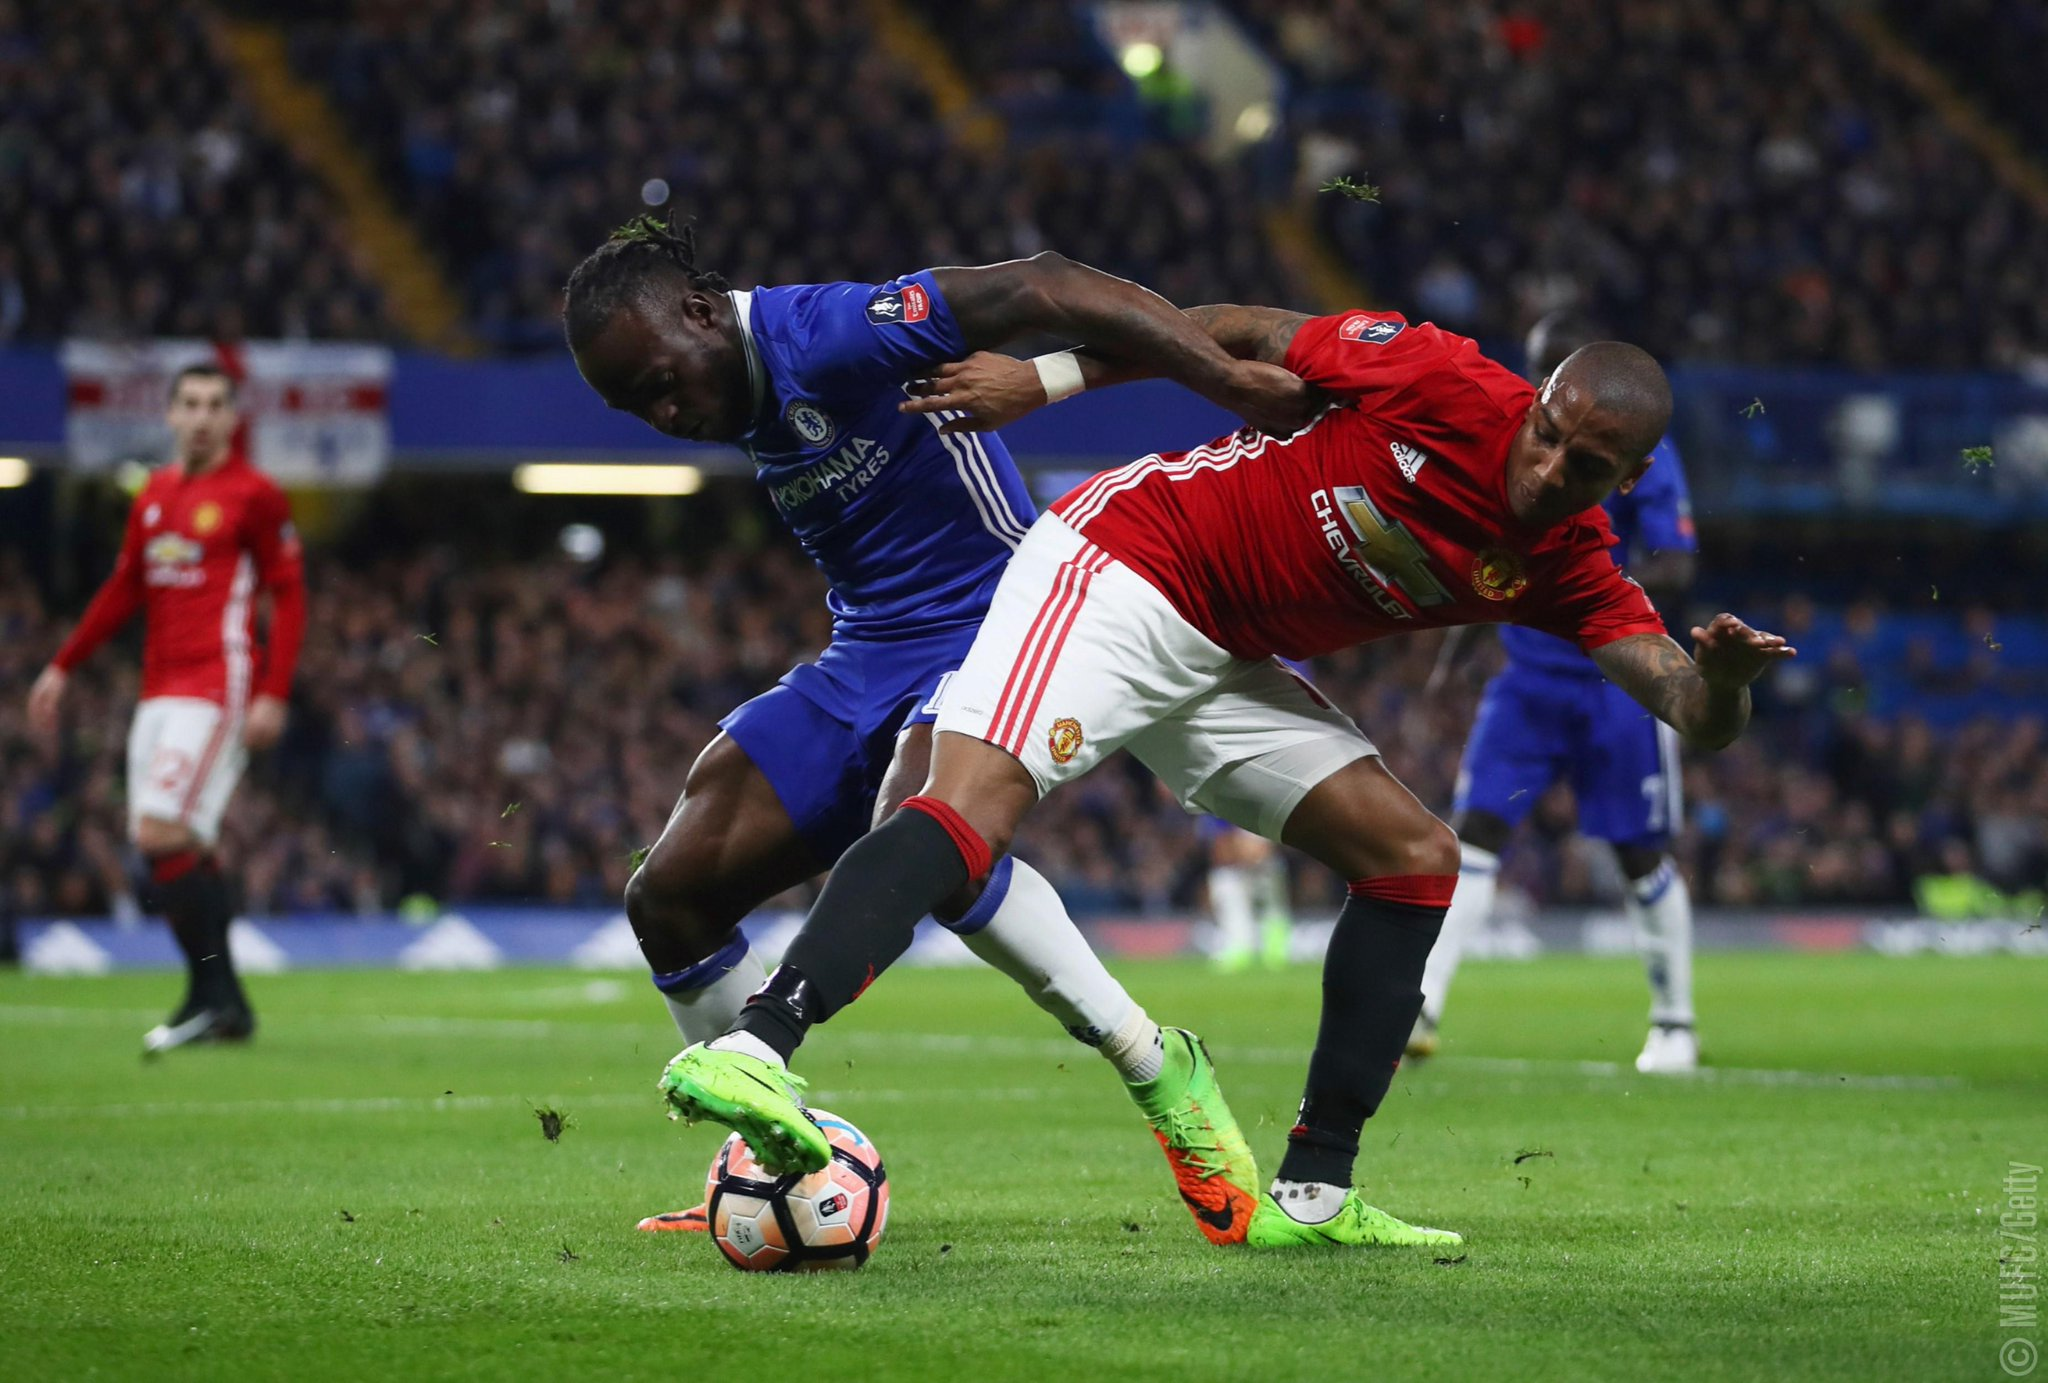 Ince: United Must Stop Hazard, Watch Out For Moses, Alonso